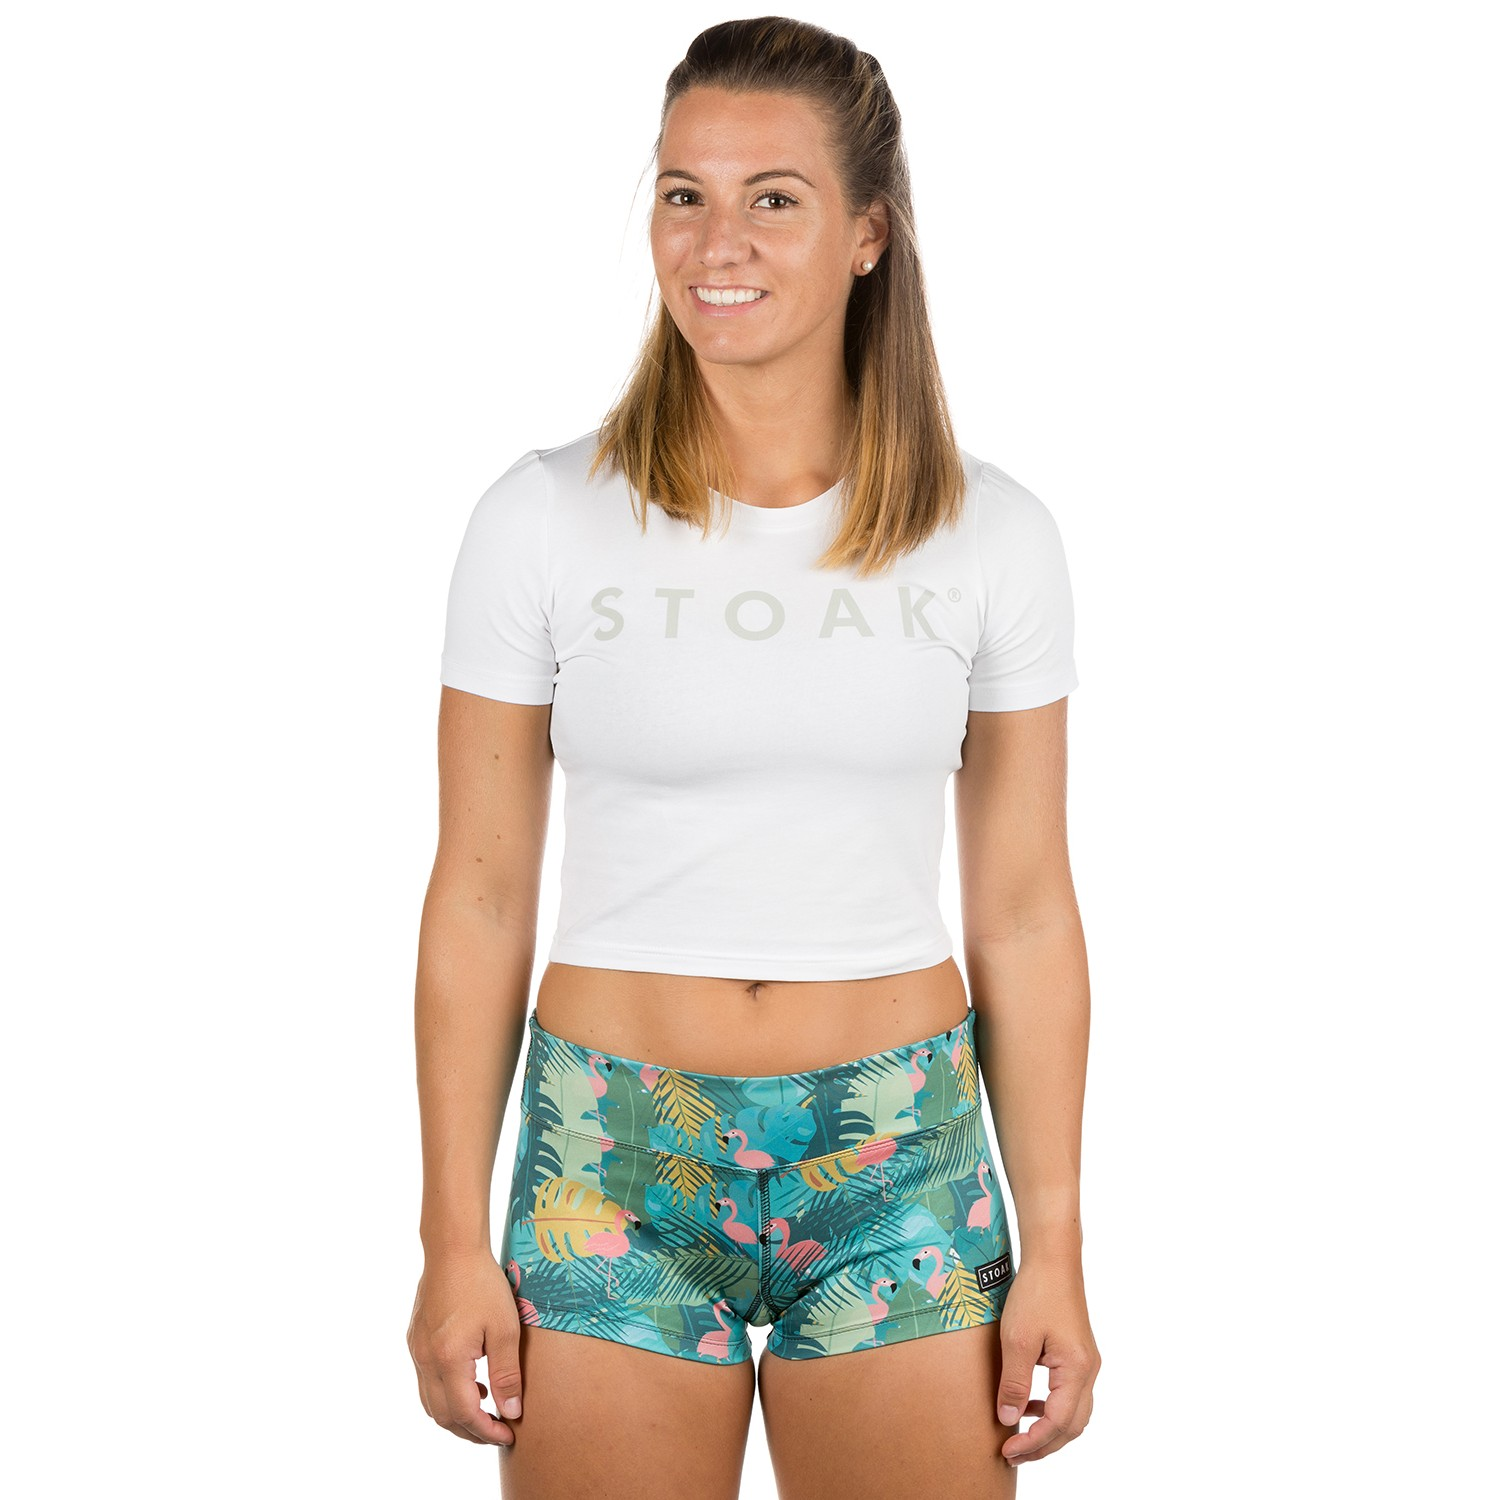 STOAK WHITE DIAMOND Crop Top